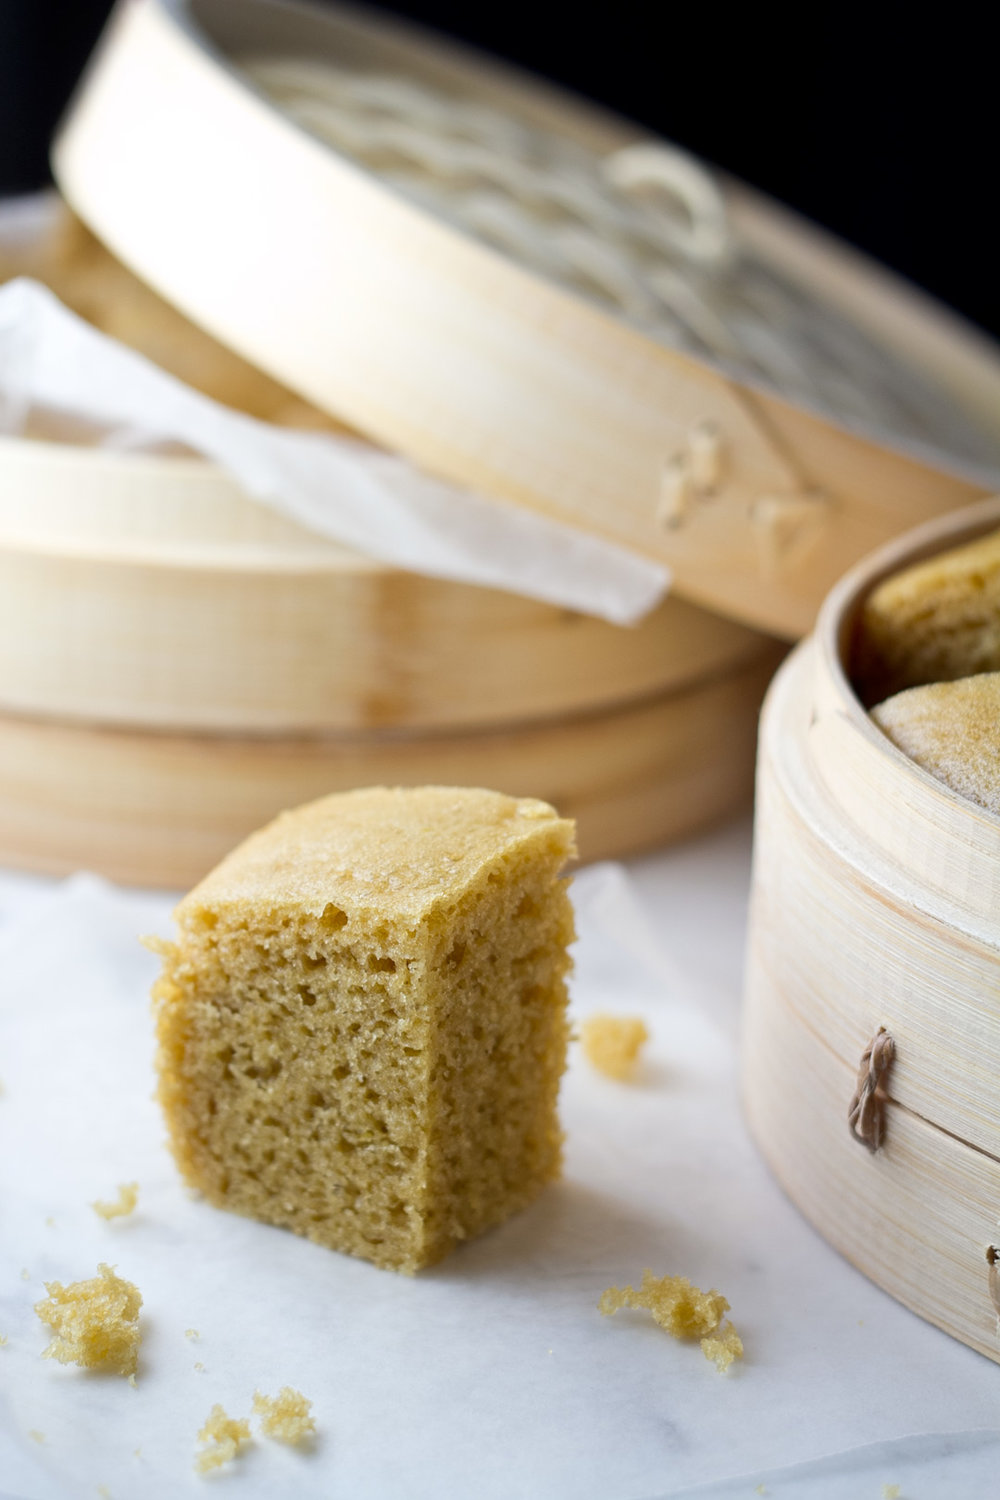 mah-lai-goh-malaysian-steamed-cake-side-view.jpg